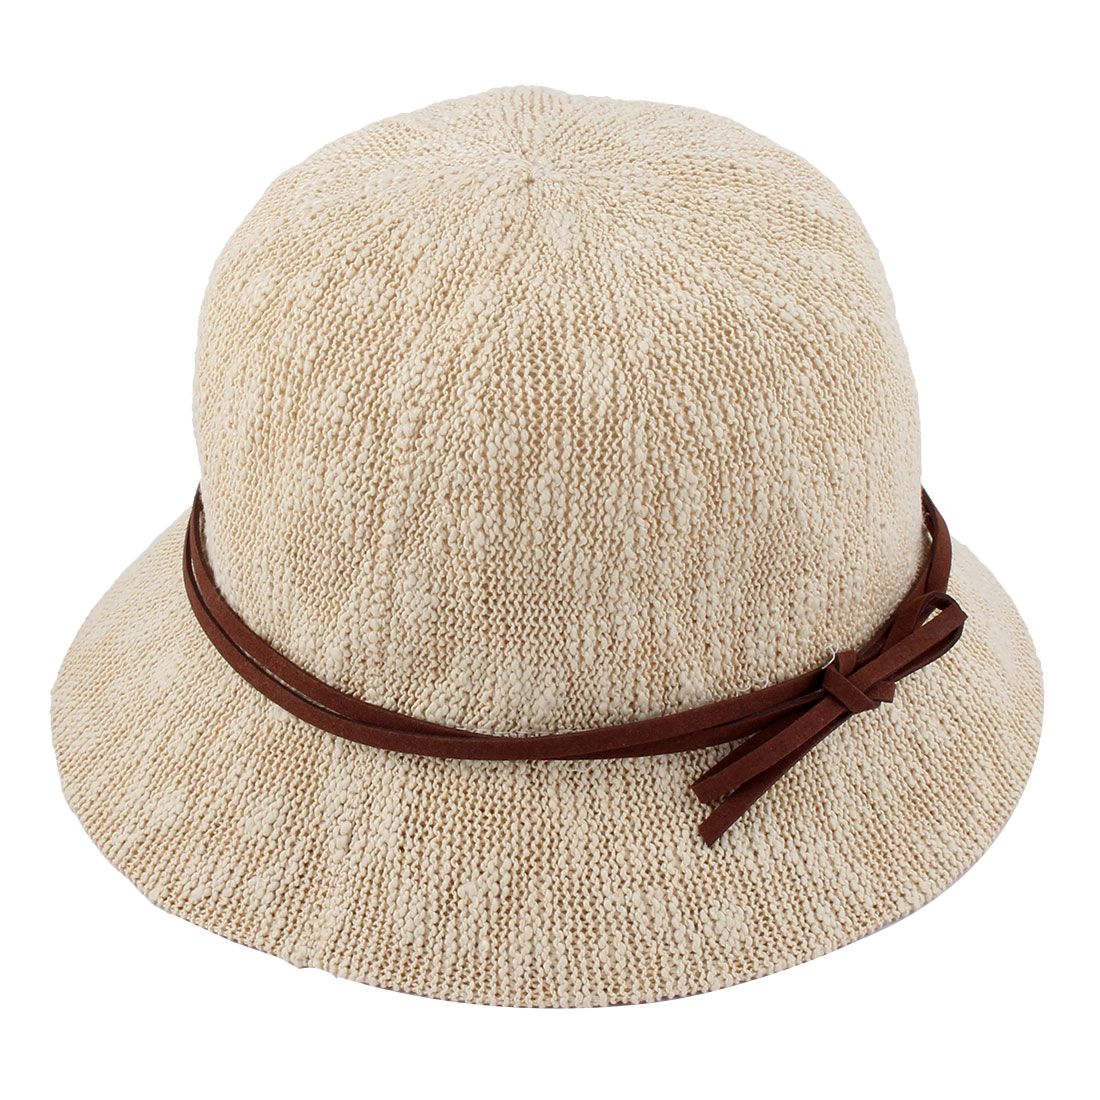 Ladies Women Straw Decoration Foldable Summer Protective Traveling Wide Brim Sun Cap Beach Fishing Hat Beige